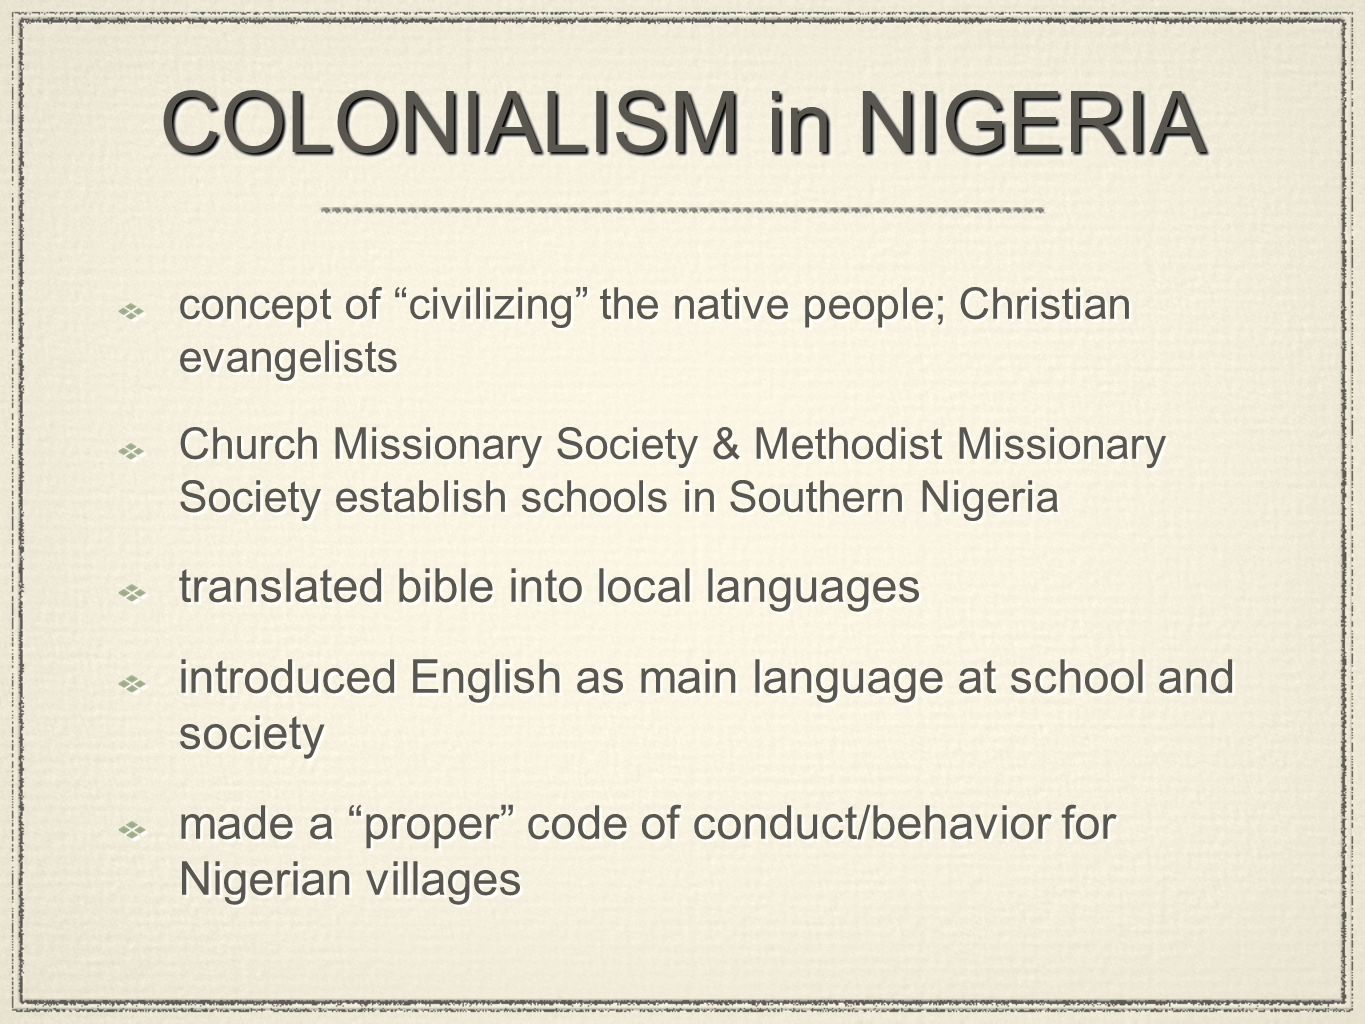 COLONIALISM in NIGERIA concept of civilizing the native people; Christian evangelists Church Missionary Society & Methodist Missionary Society establish schools in Southern Nigeria translated bible into local languages introduced English as main language at school and society made a proper code of conduct/behavior for Nigerian villages concept of civilizing the native people; Christian evangelists Church Missionary Society & Methodist Missionary Society establish schools in Southern Nigeria translated bible into local languages introduced English as main language at school and society made a proper code of conduct/behavior for Nigerian villages